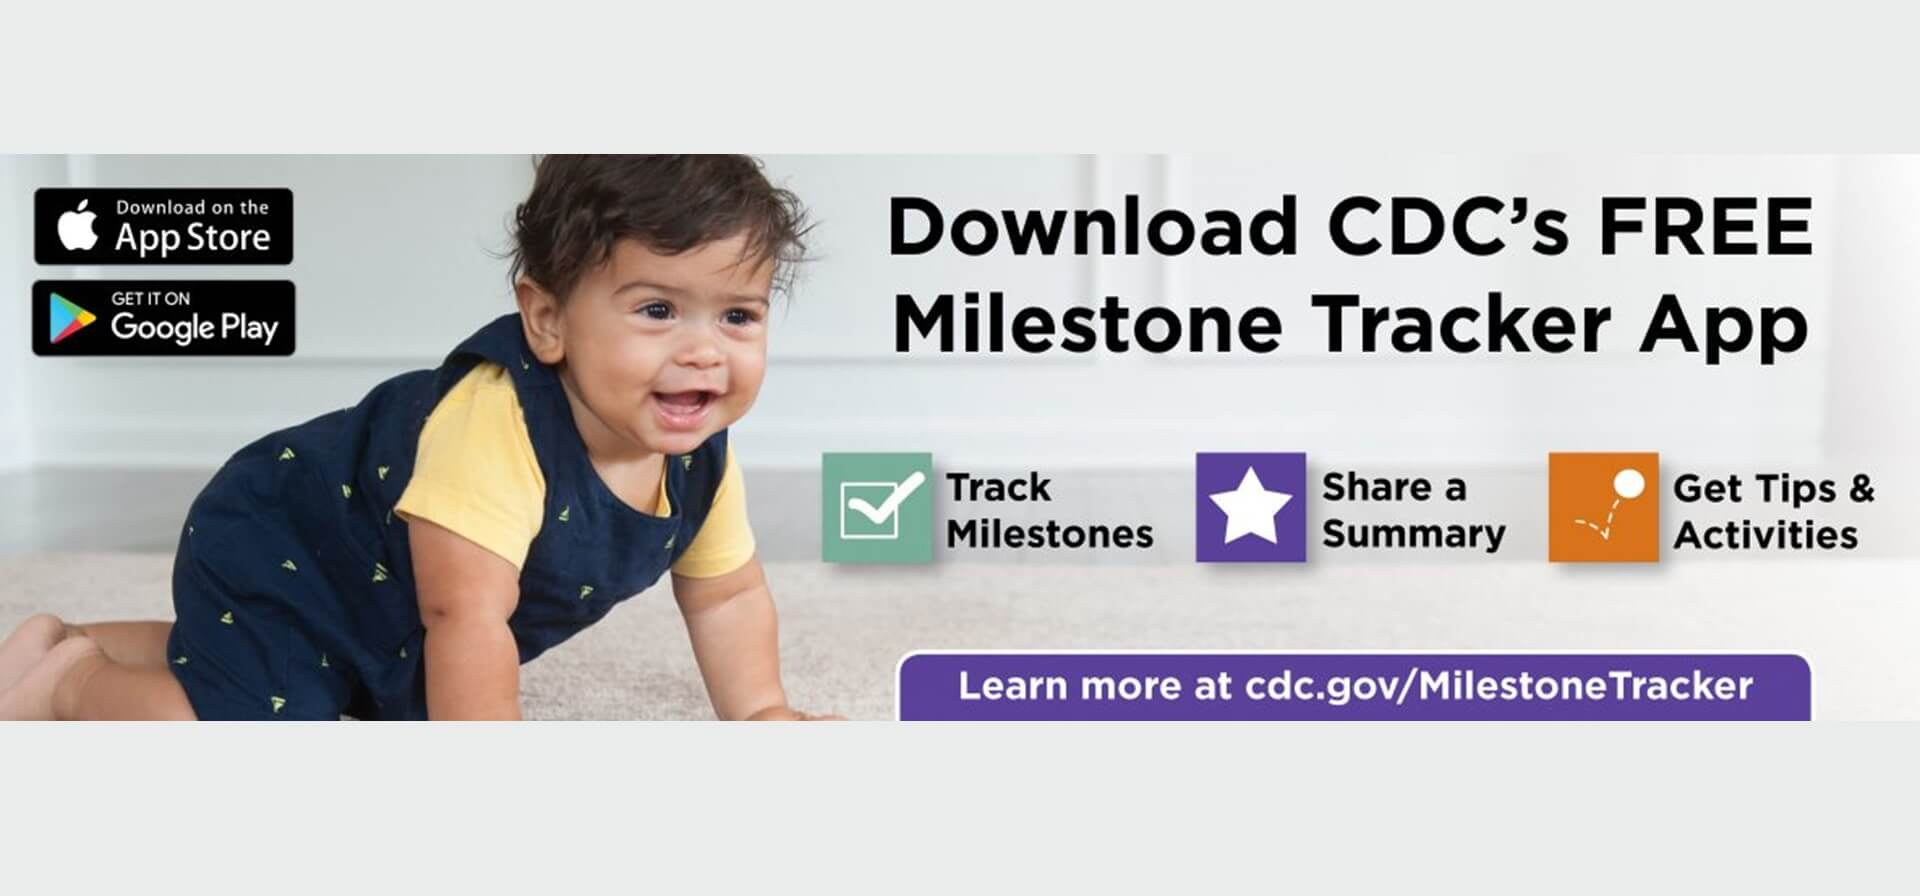 Download the CDC's free milestone tracker app